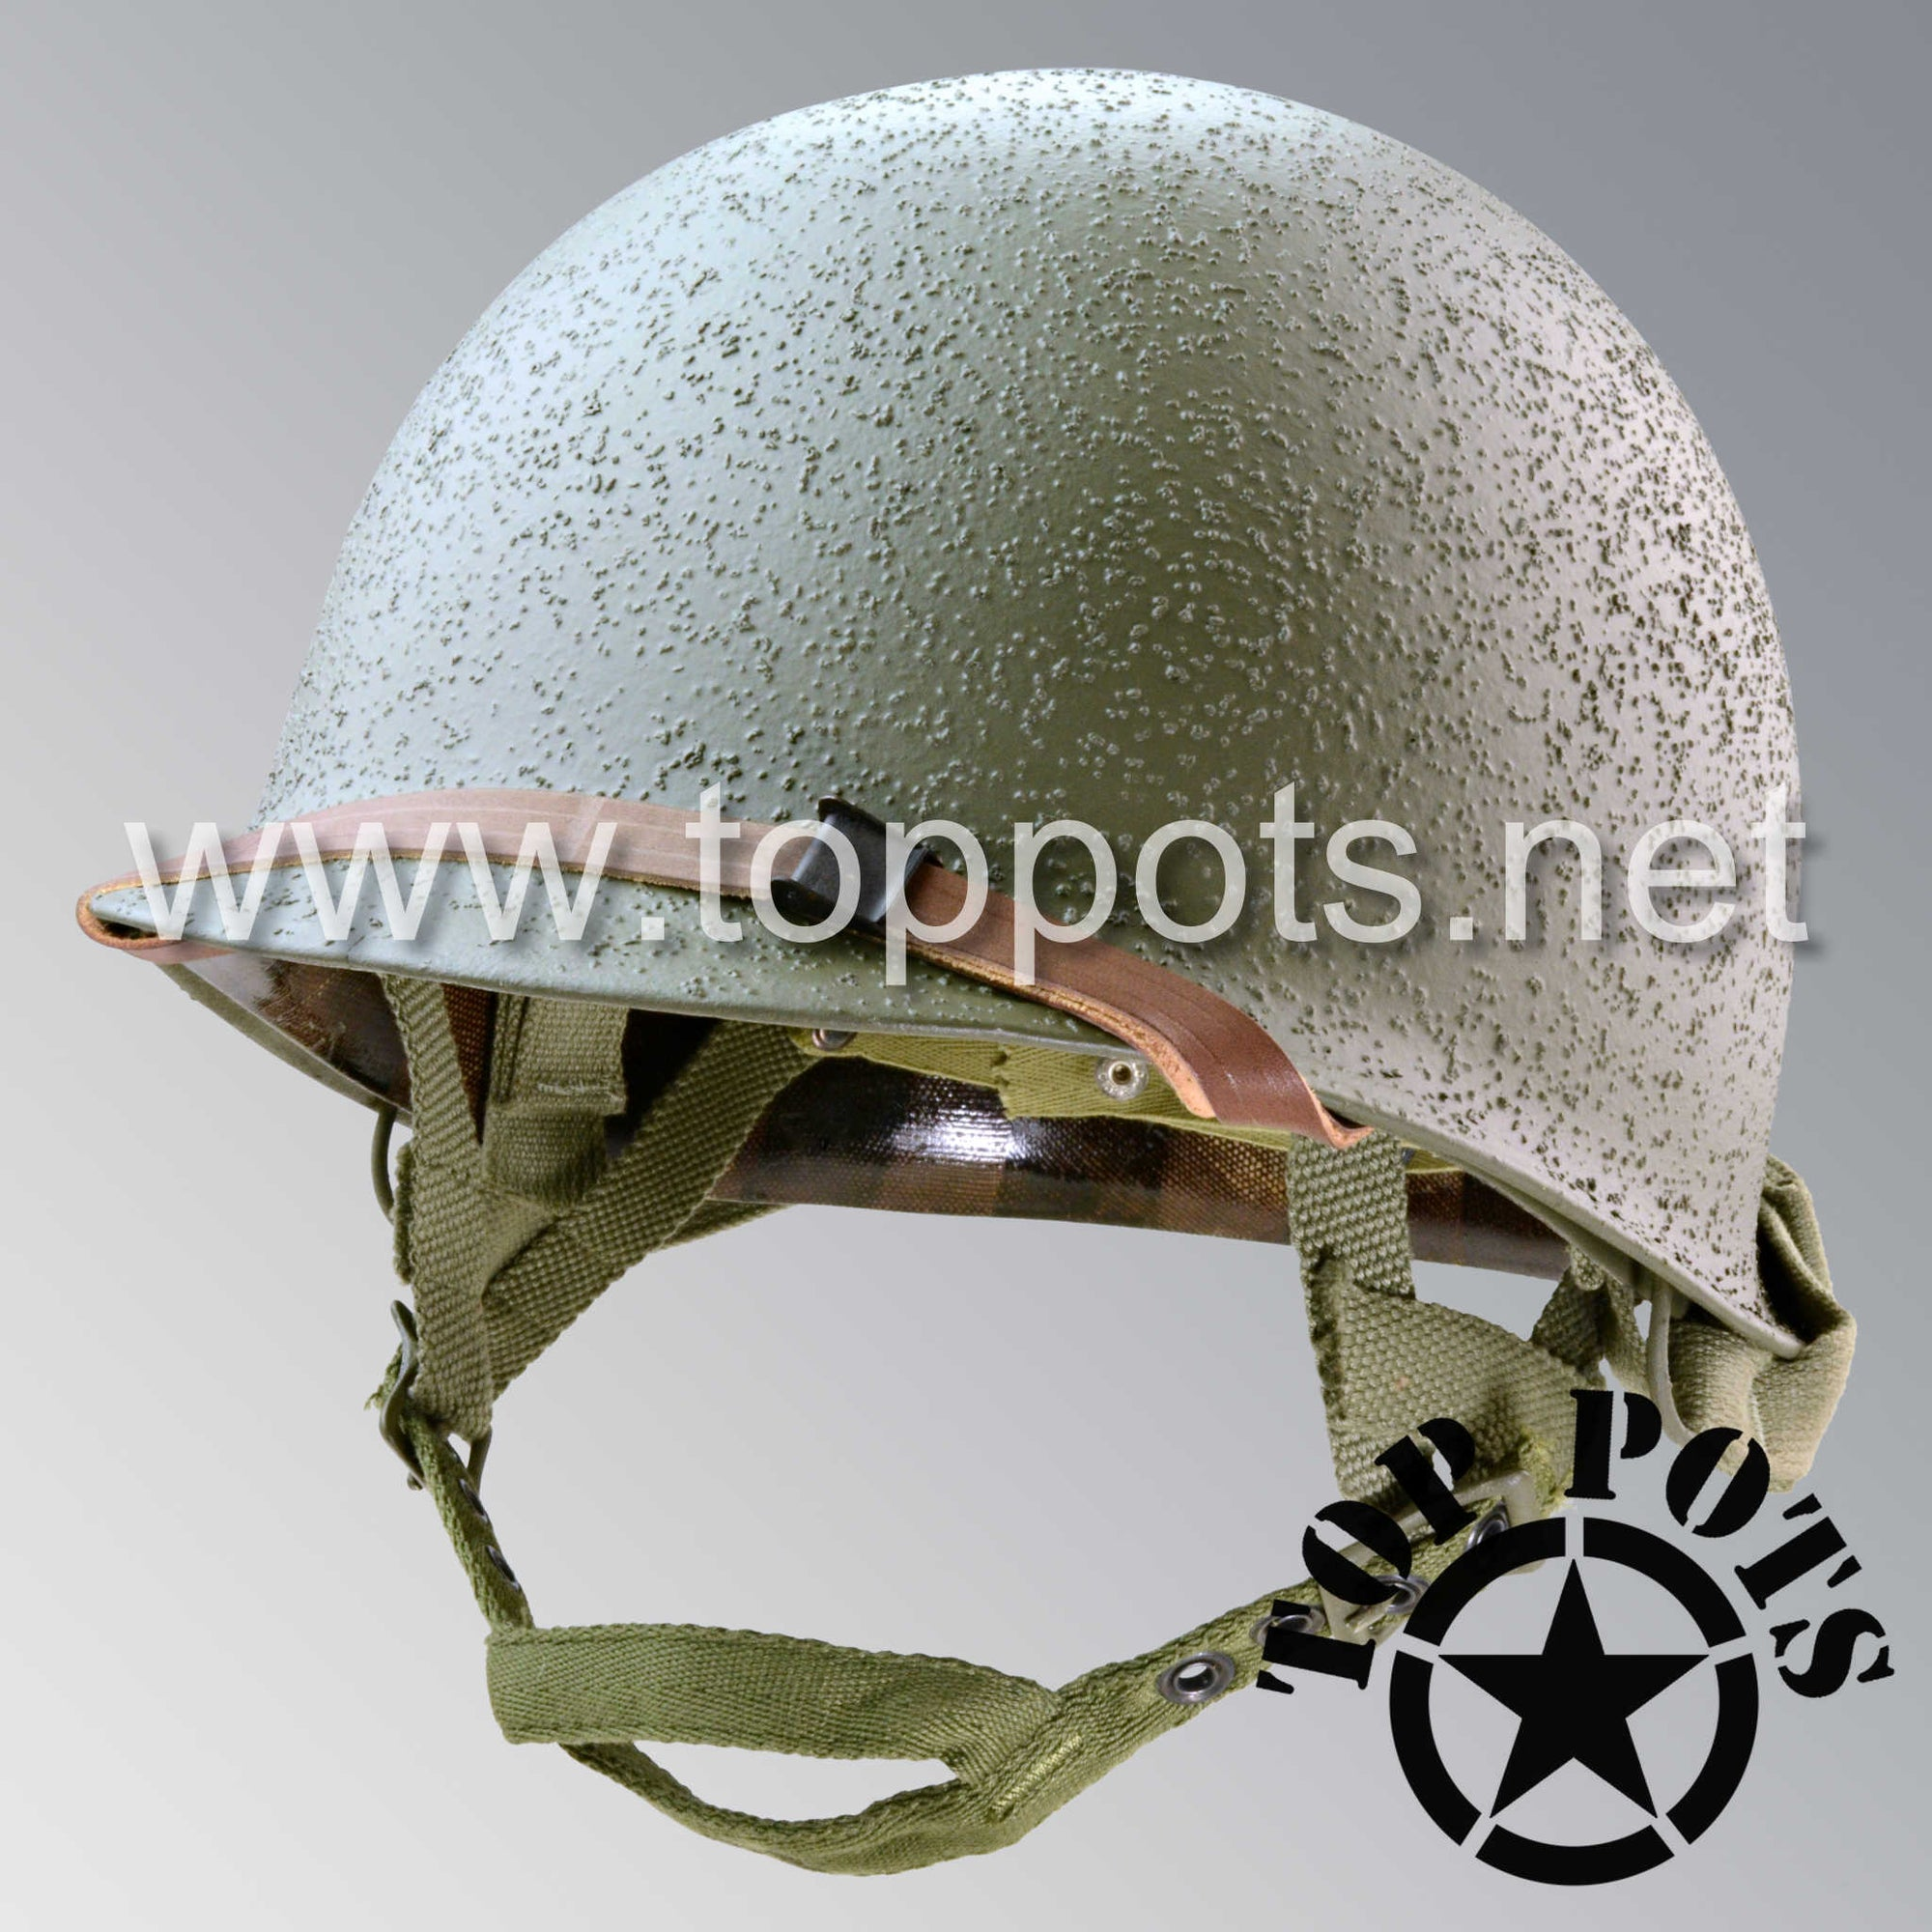 Image 1 of WWII US Army Restored Original M2 Paratrooper Airborne Helmet D Bale Shell and Liner with Westinghouse A Straps and Webbed Chincup